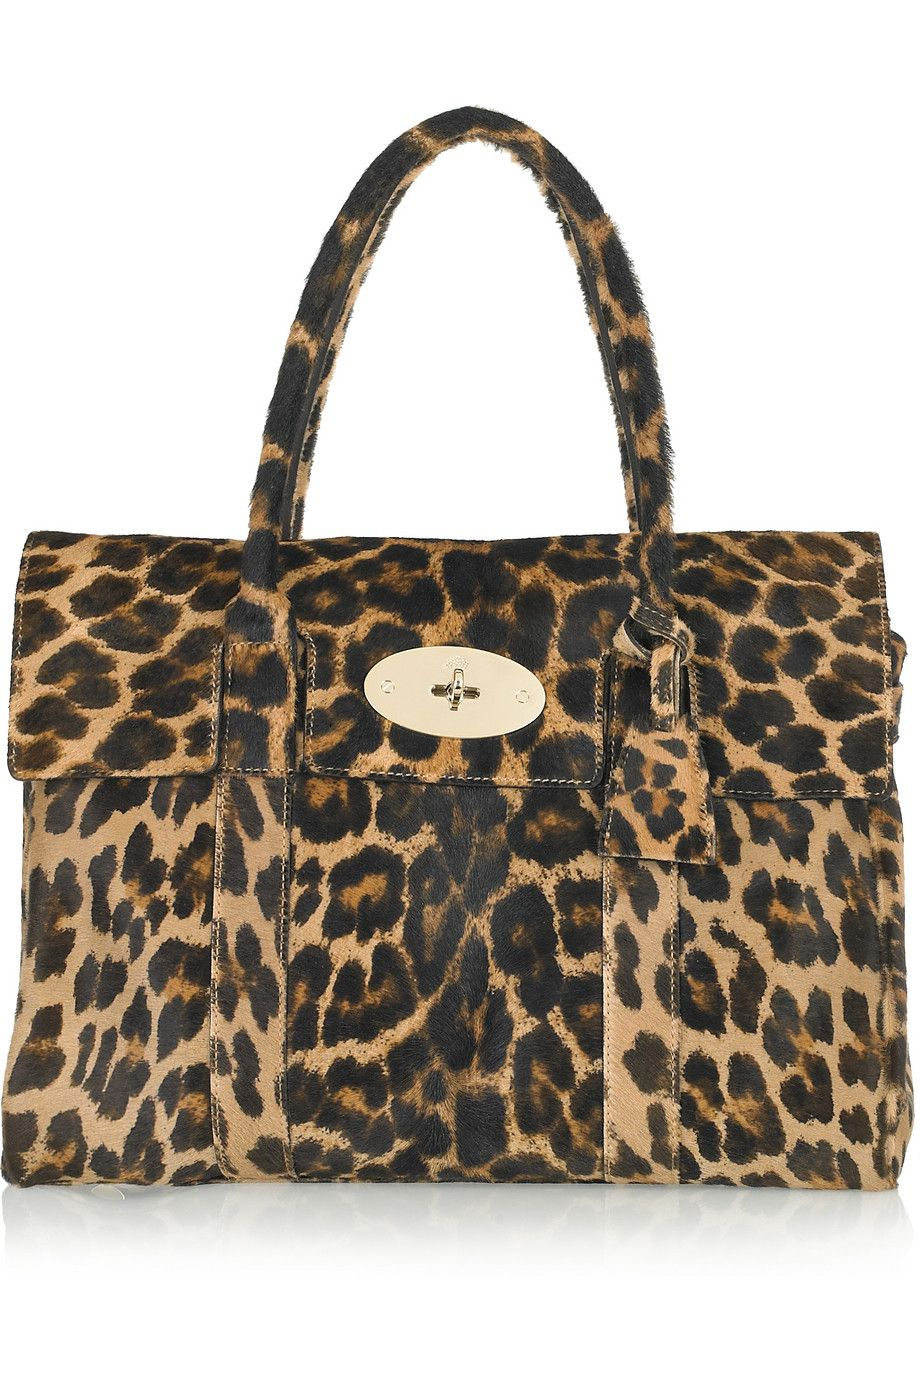 f8f87d3a7f12 Mulberry Bayswater Calf Hair Bag in Leopard Print £2000